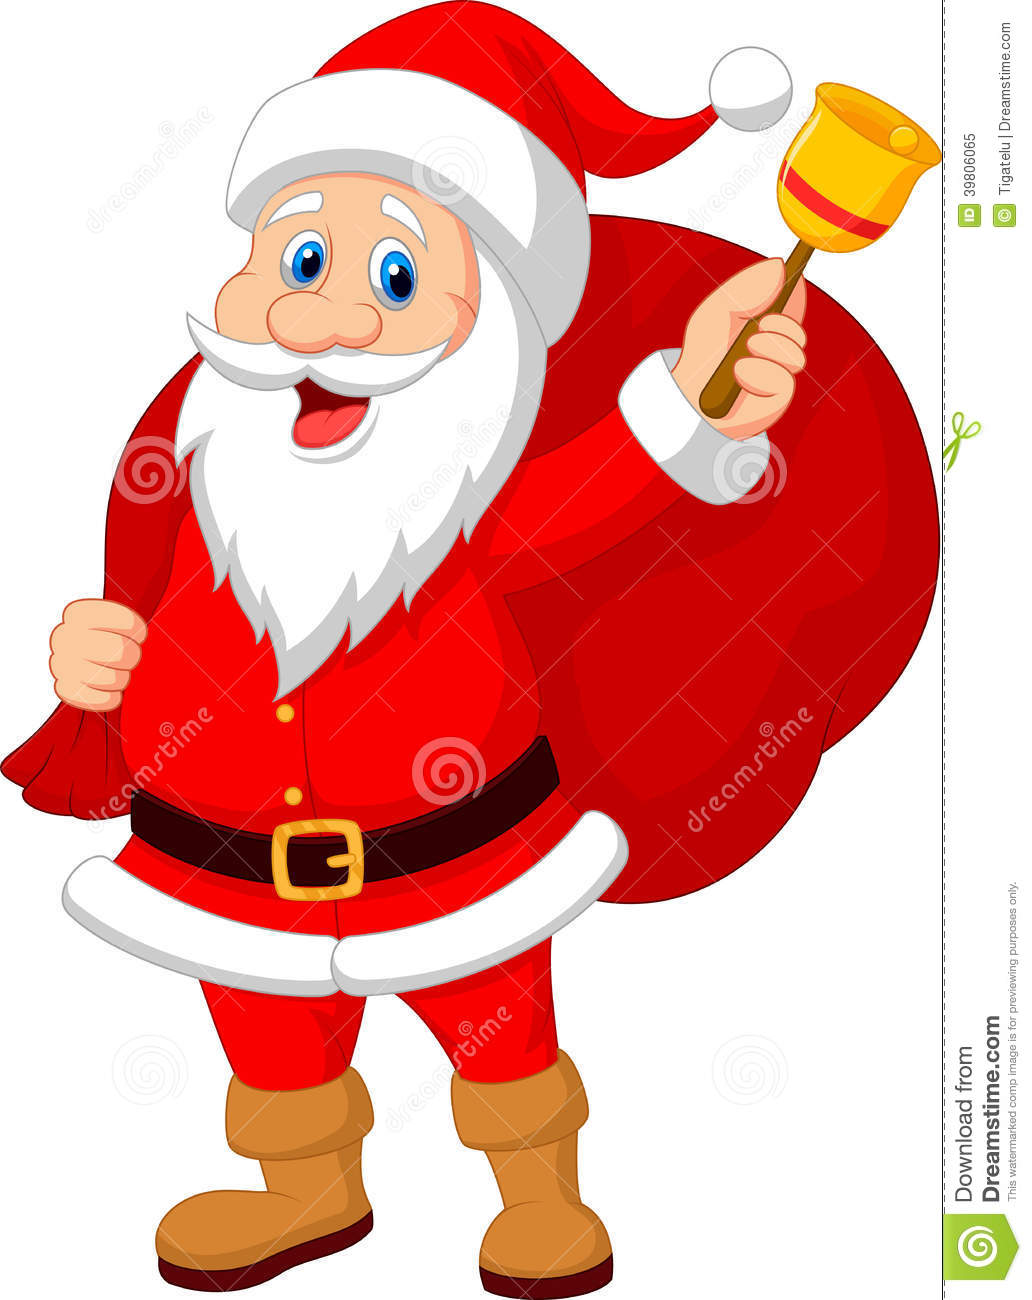 Santa claus cartoon with bell carrying sack stock vector illustration of holiday gift 39806065 - Papa noel vector ...